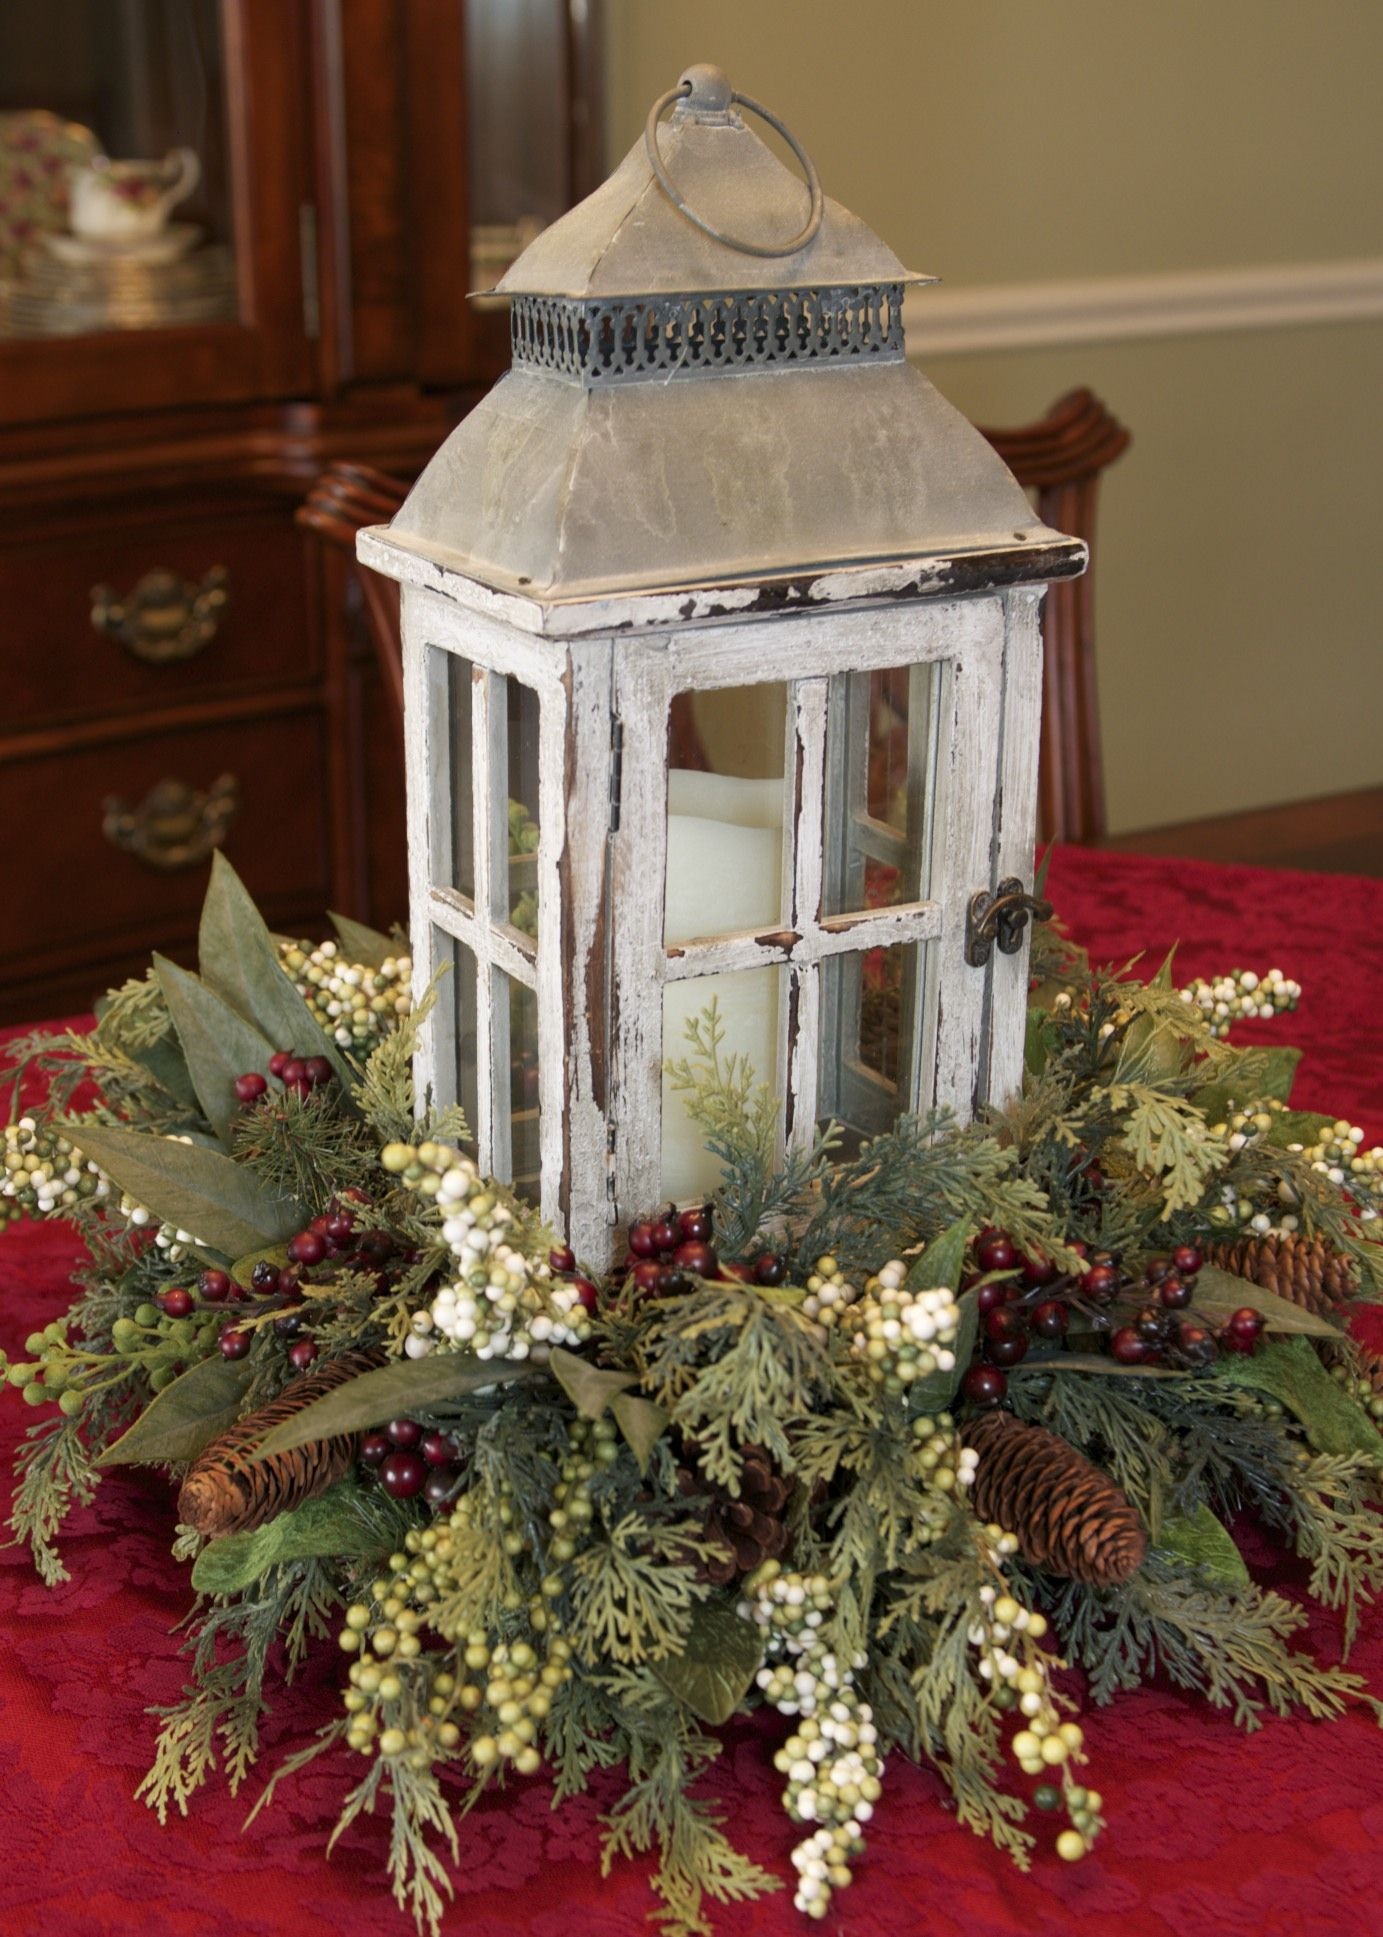 pin by kathie hamerik on kathie 39 s decorating with lanterns